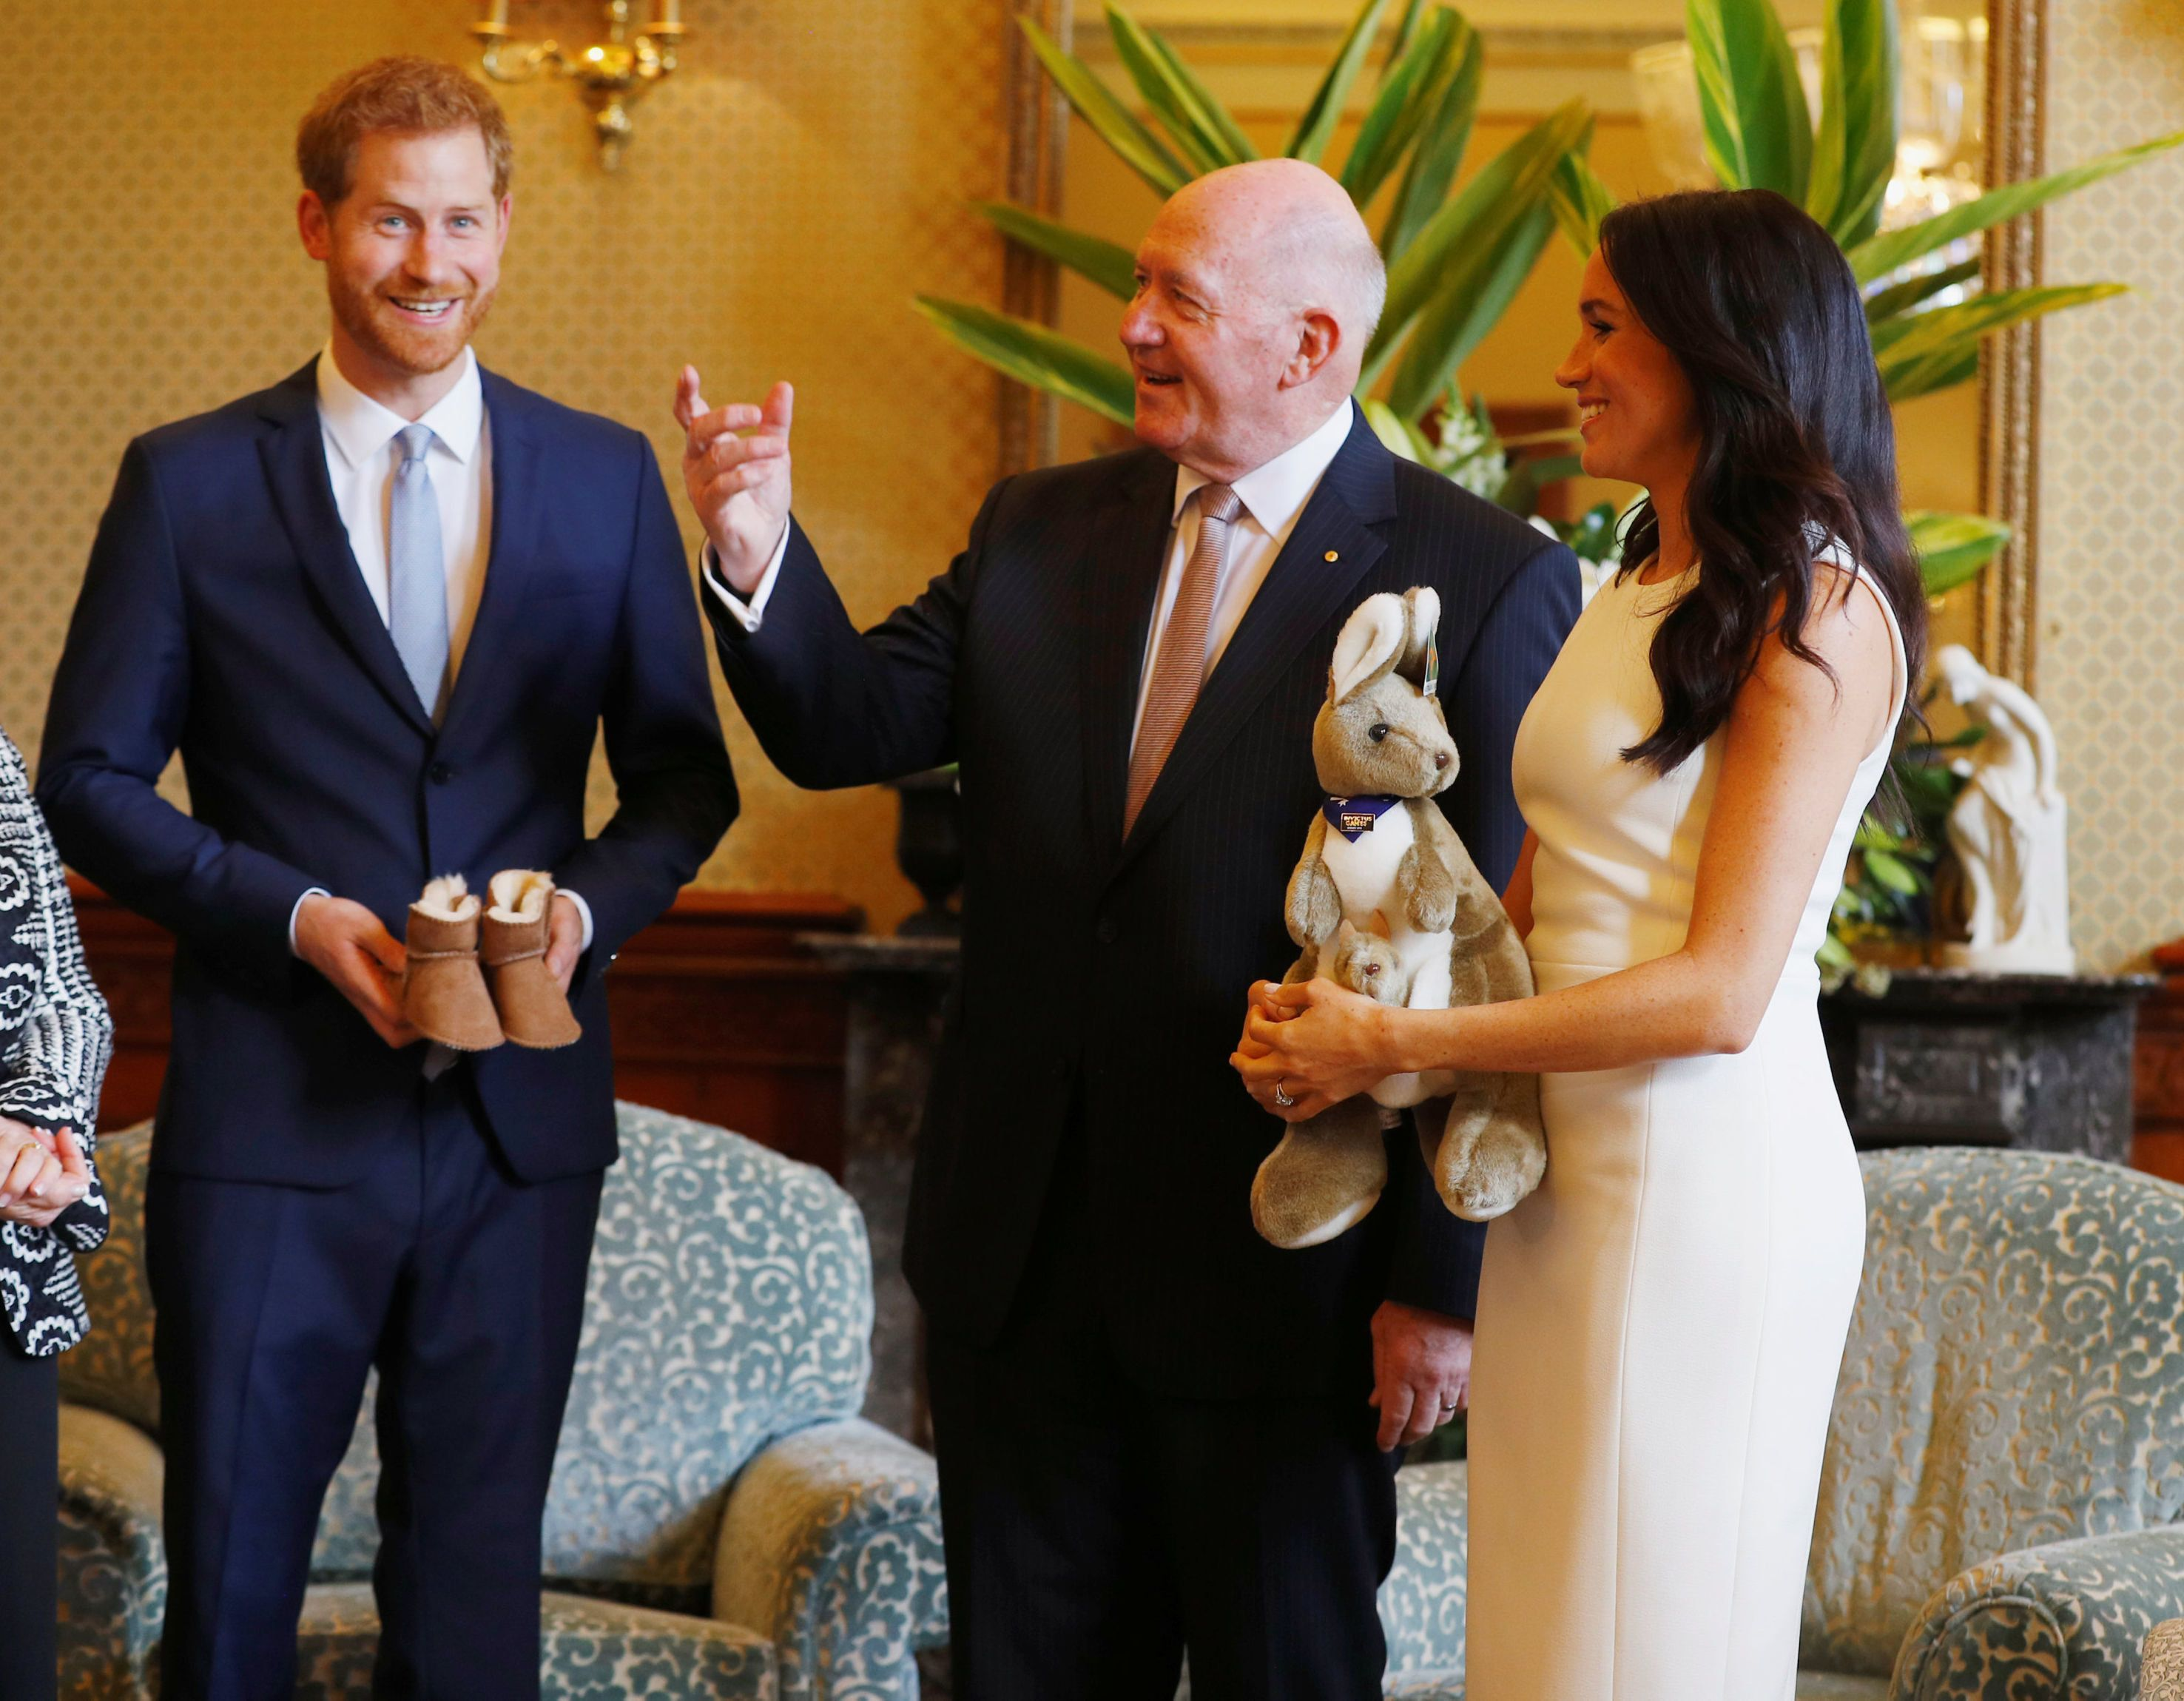 Royal Photographer Says Prince Harry Will Be 'A Great